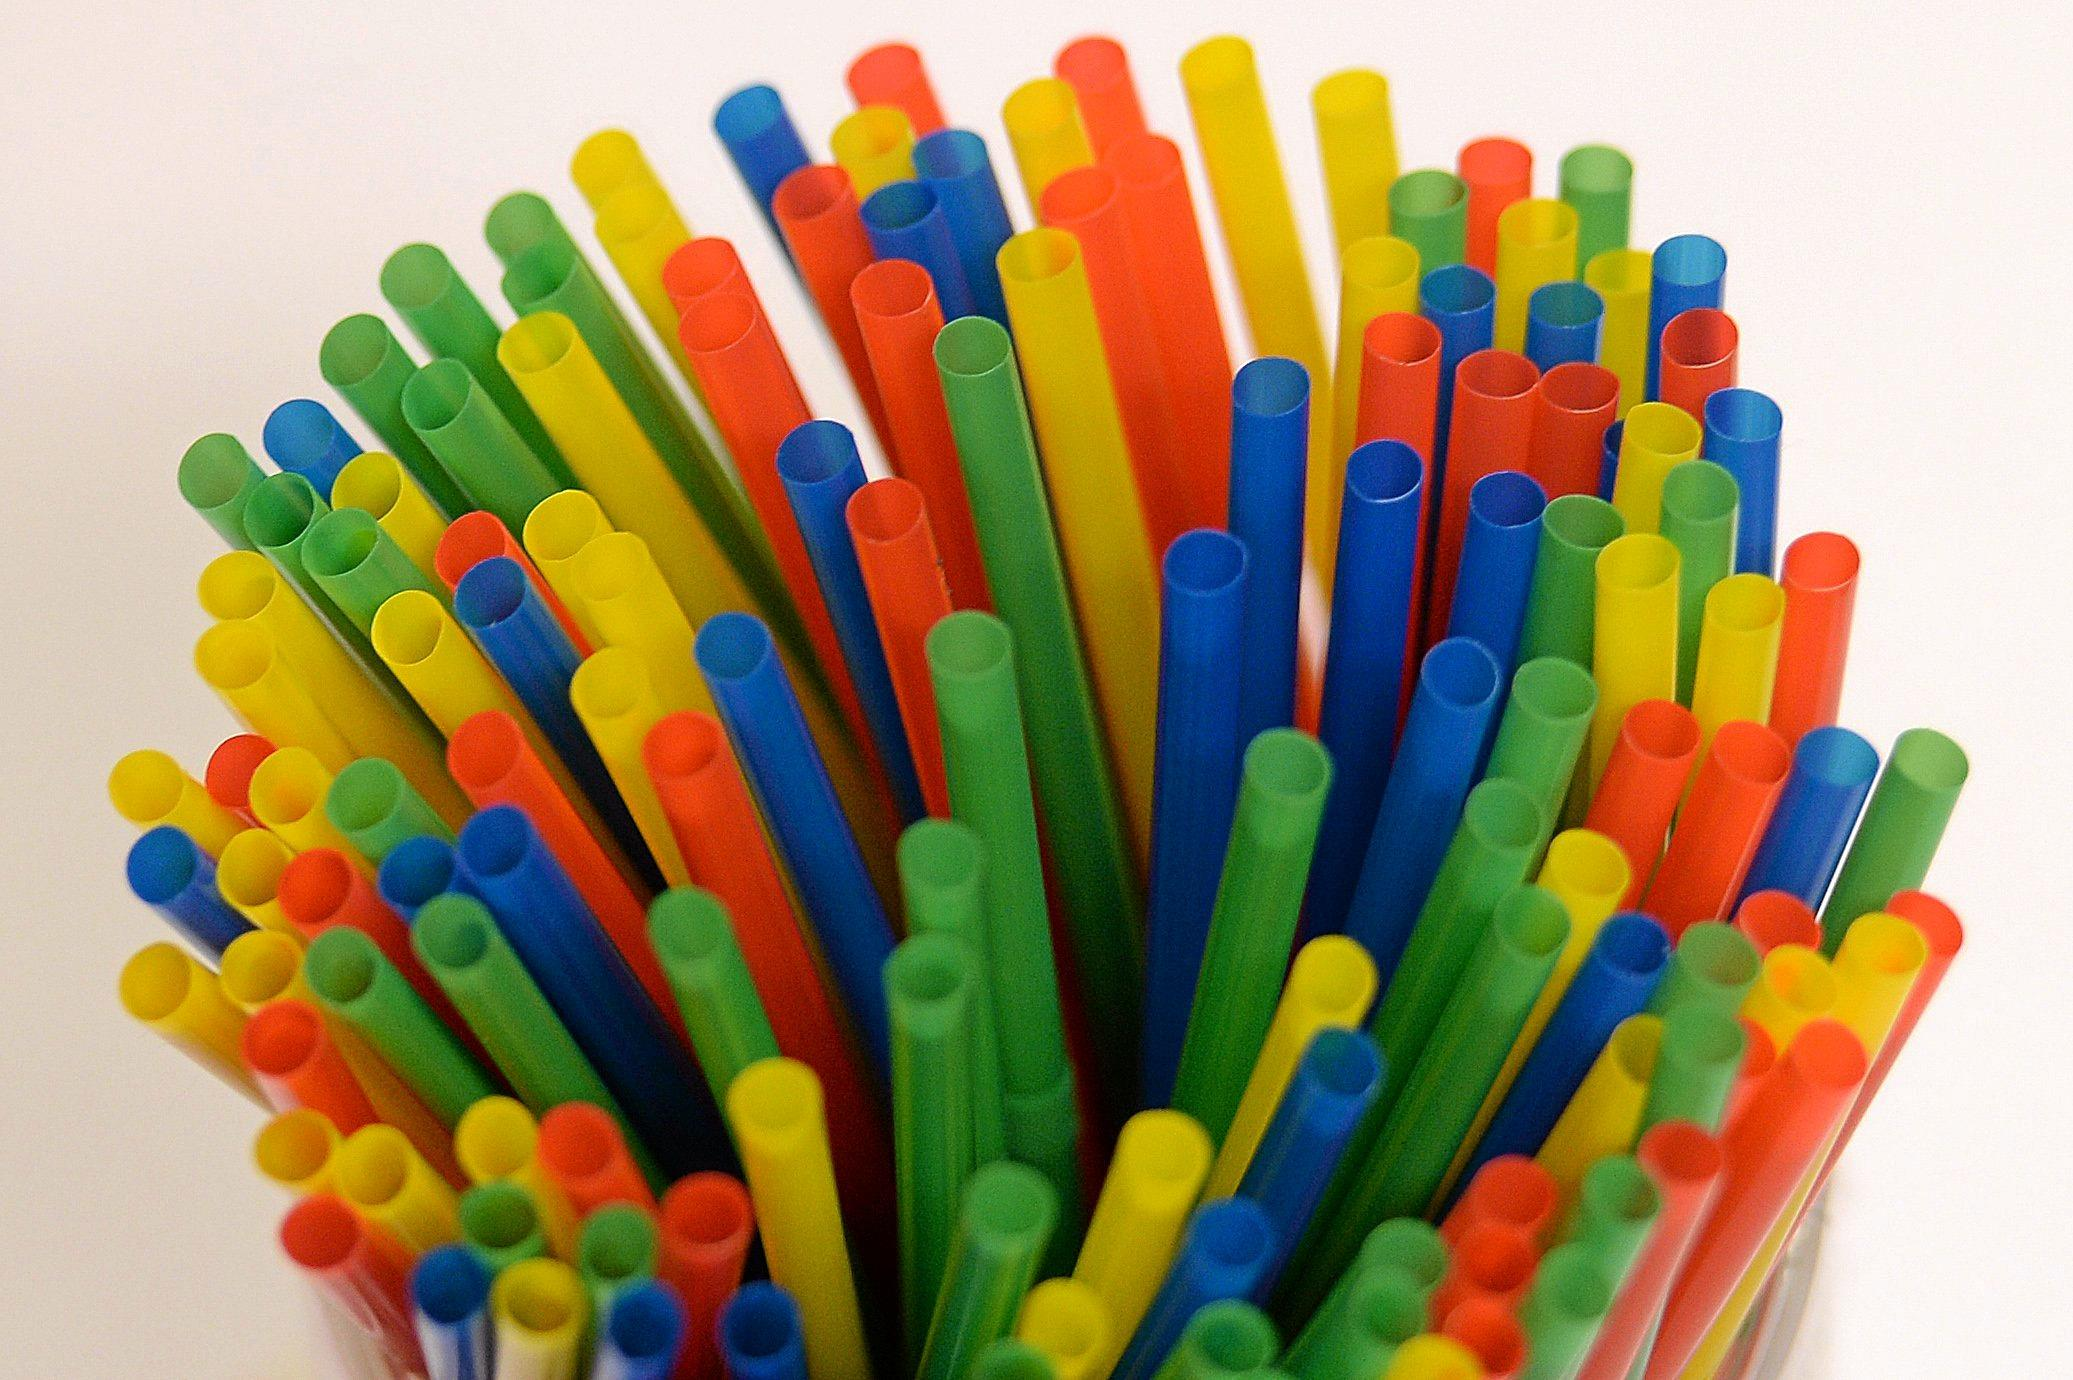 Office Supplies Caloundra Council To Consider Eliminating More Single Use Plastics